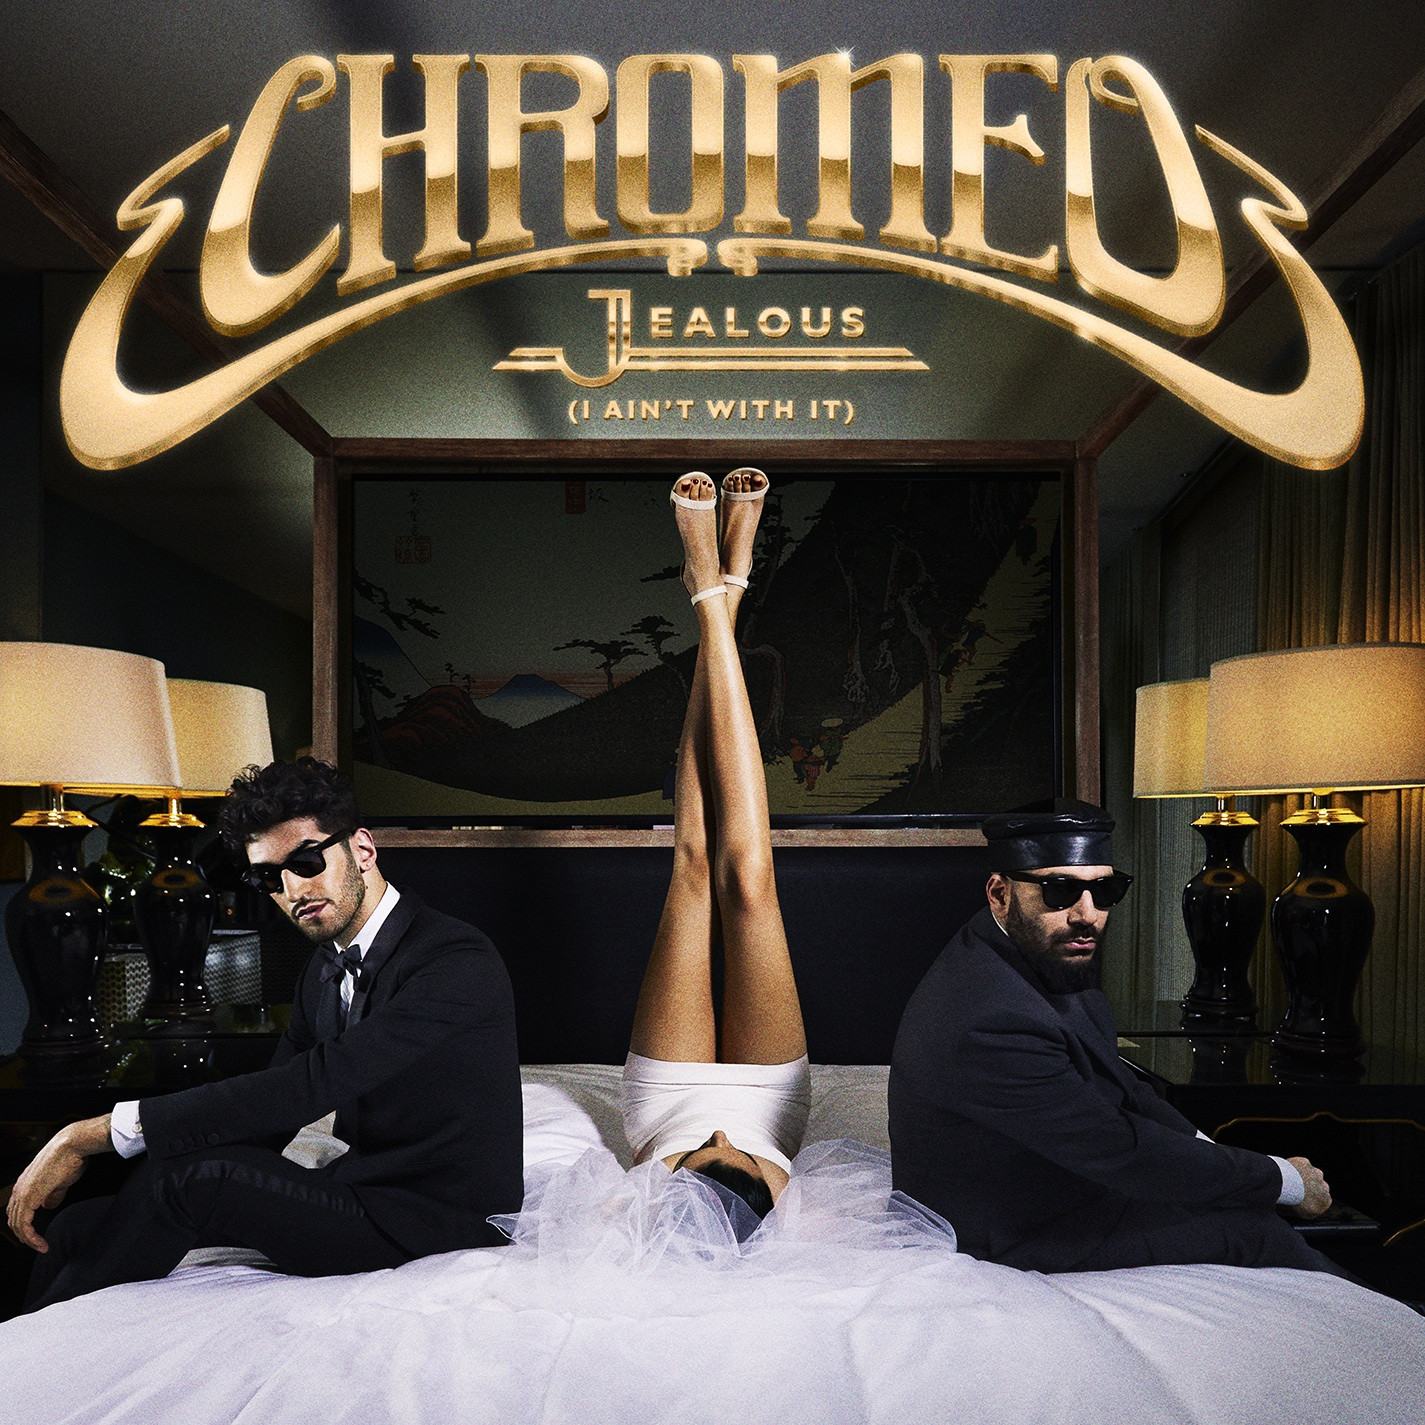 Chromeo - Jealous (Ain't With It)